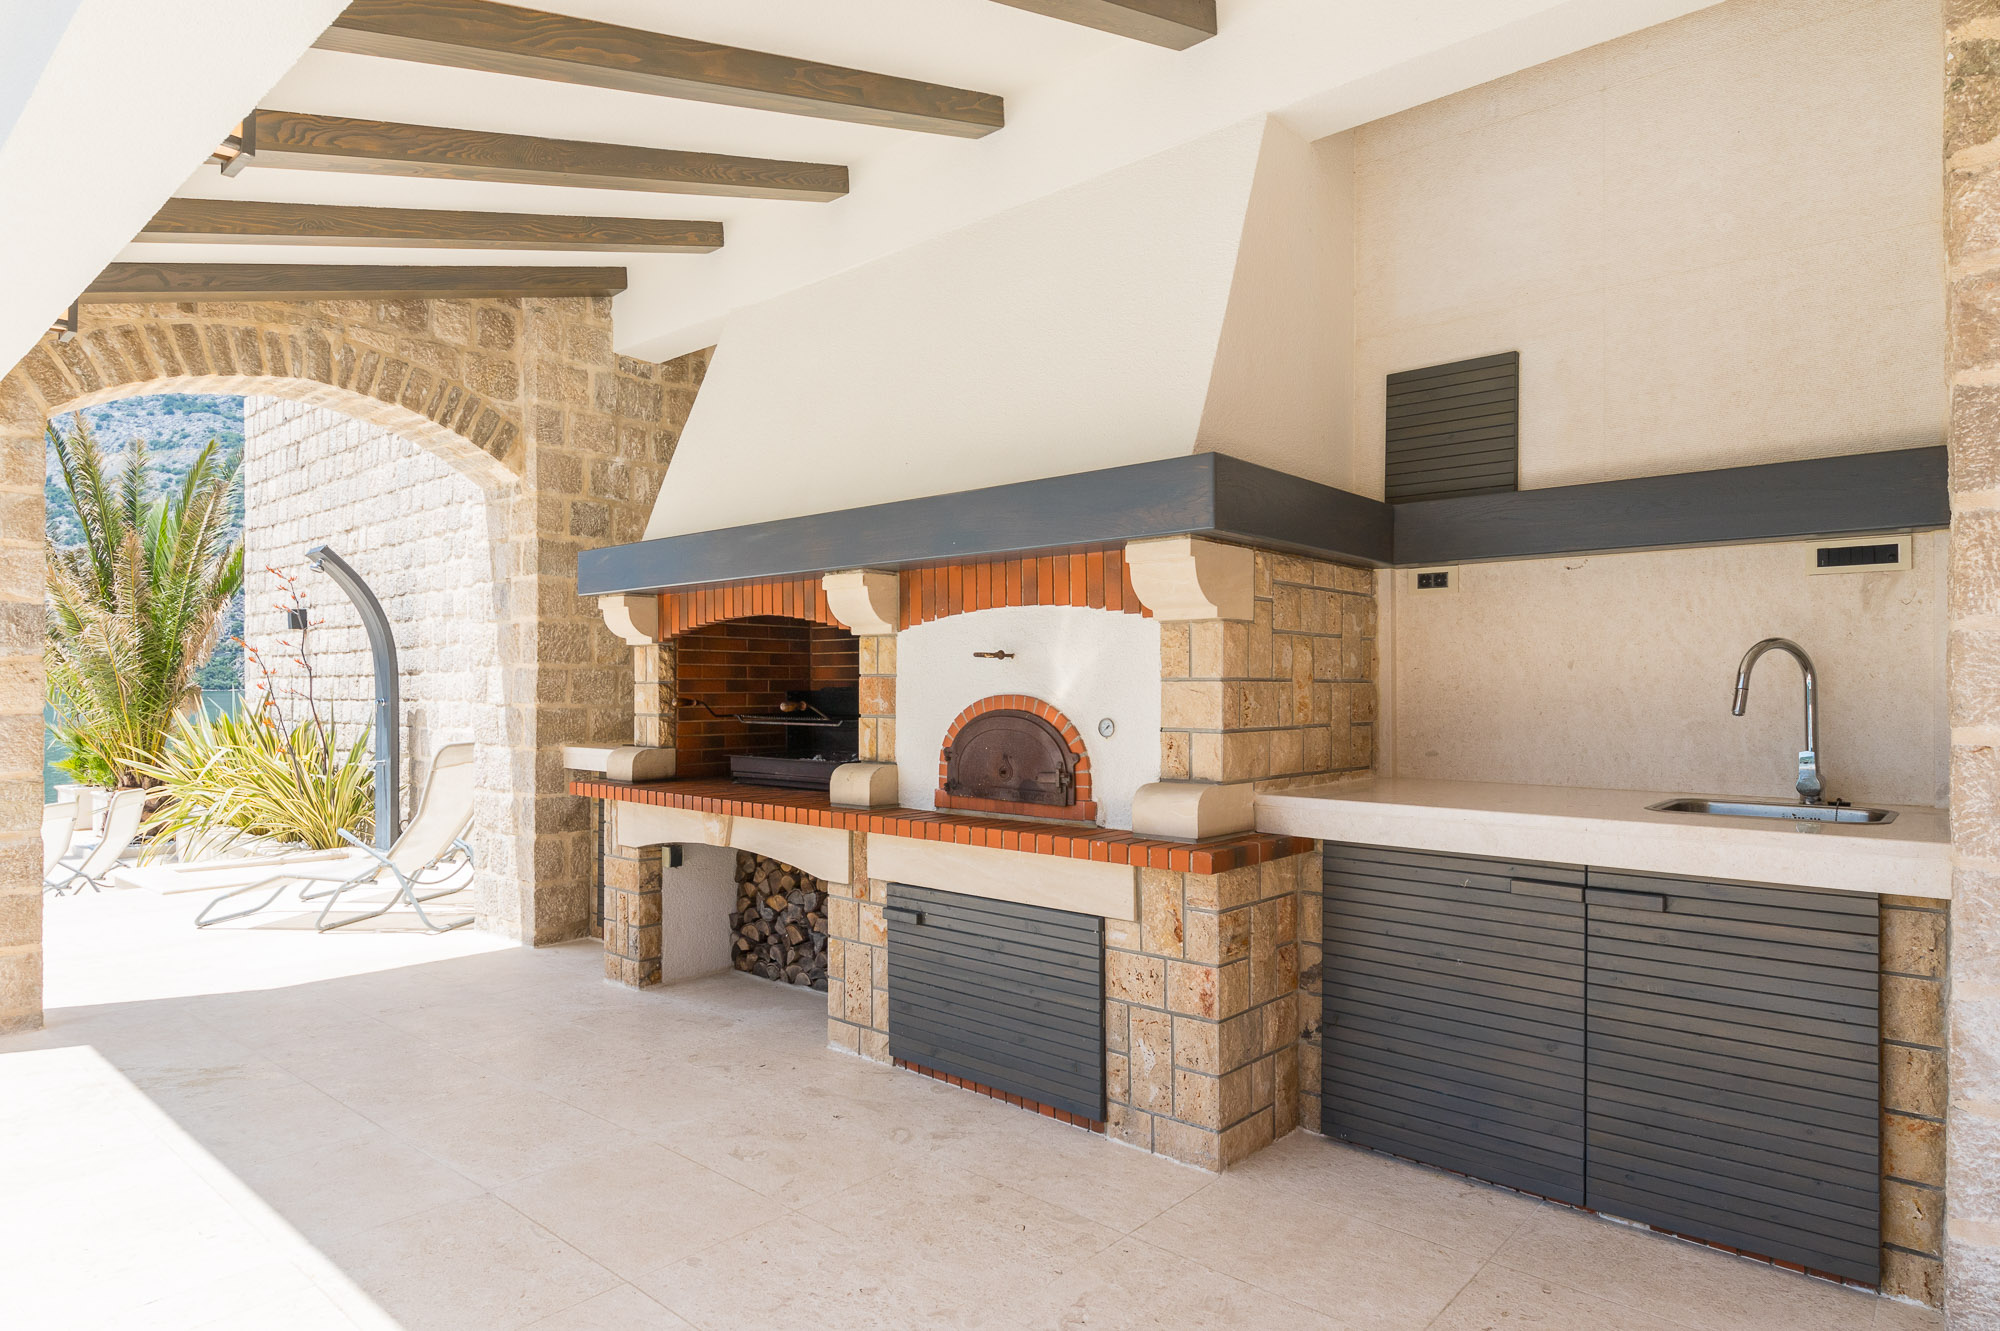 waterfront-villa-with-pizza-stove-Bay-Of-Kotor-Montenegro.jpg